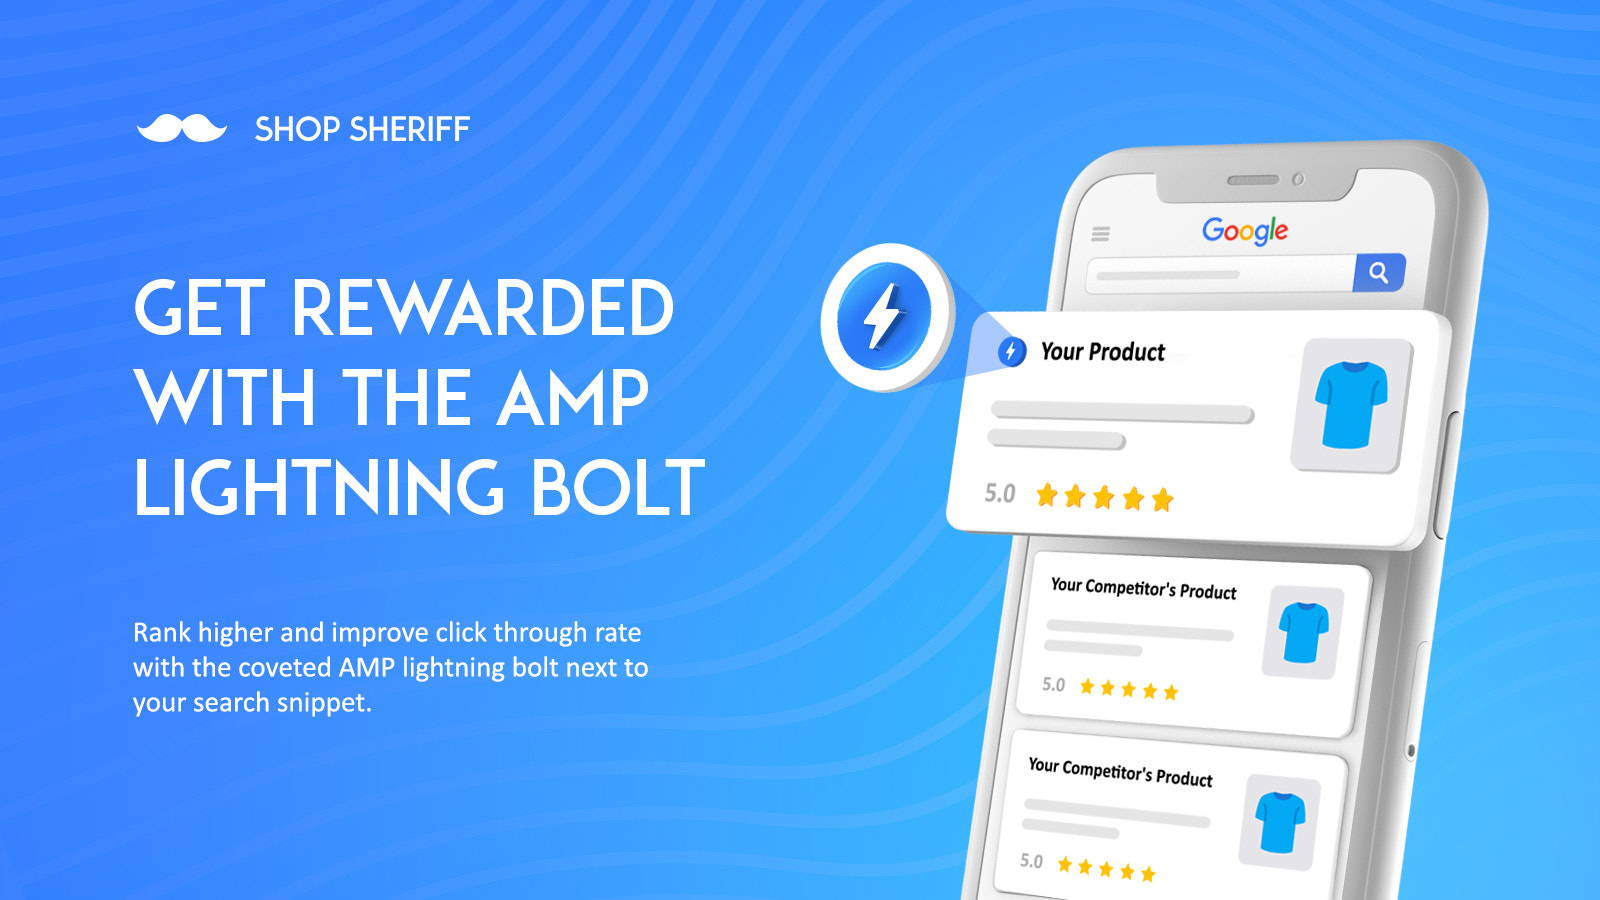 AMP Google Dashboard for SEO and Page Speed on mobile phones